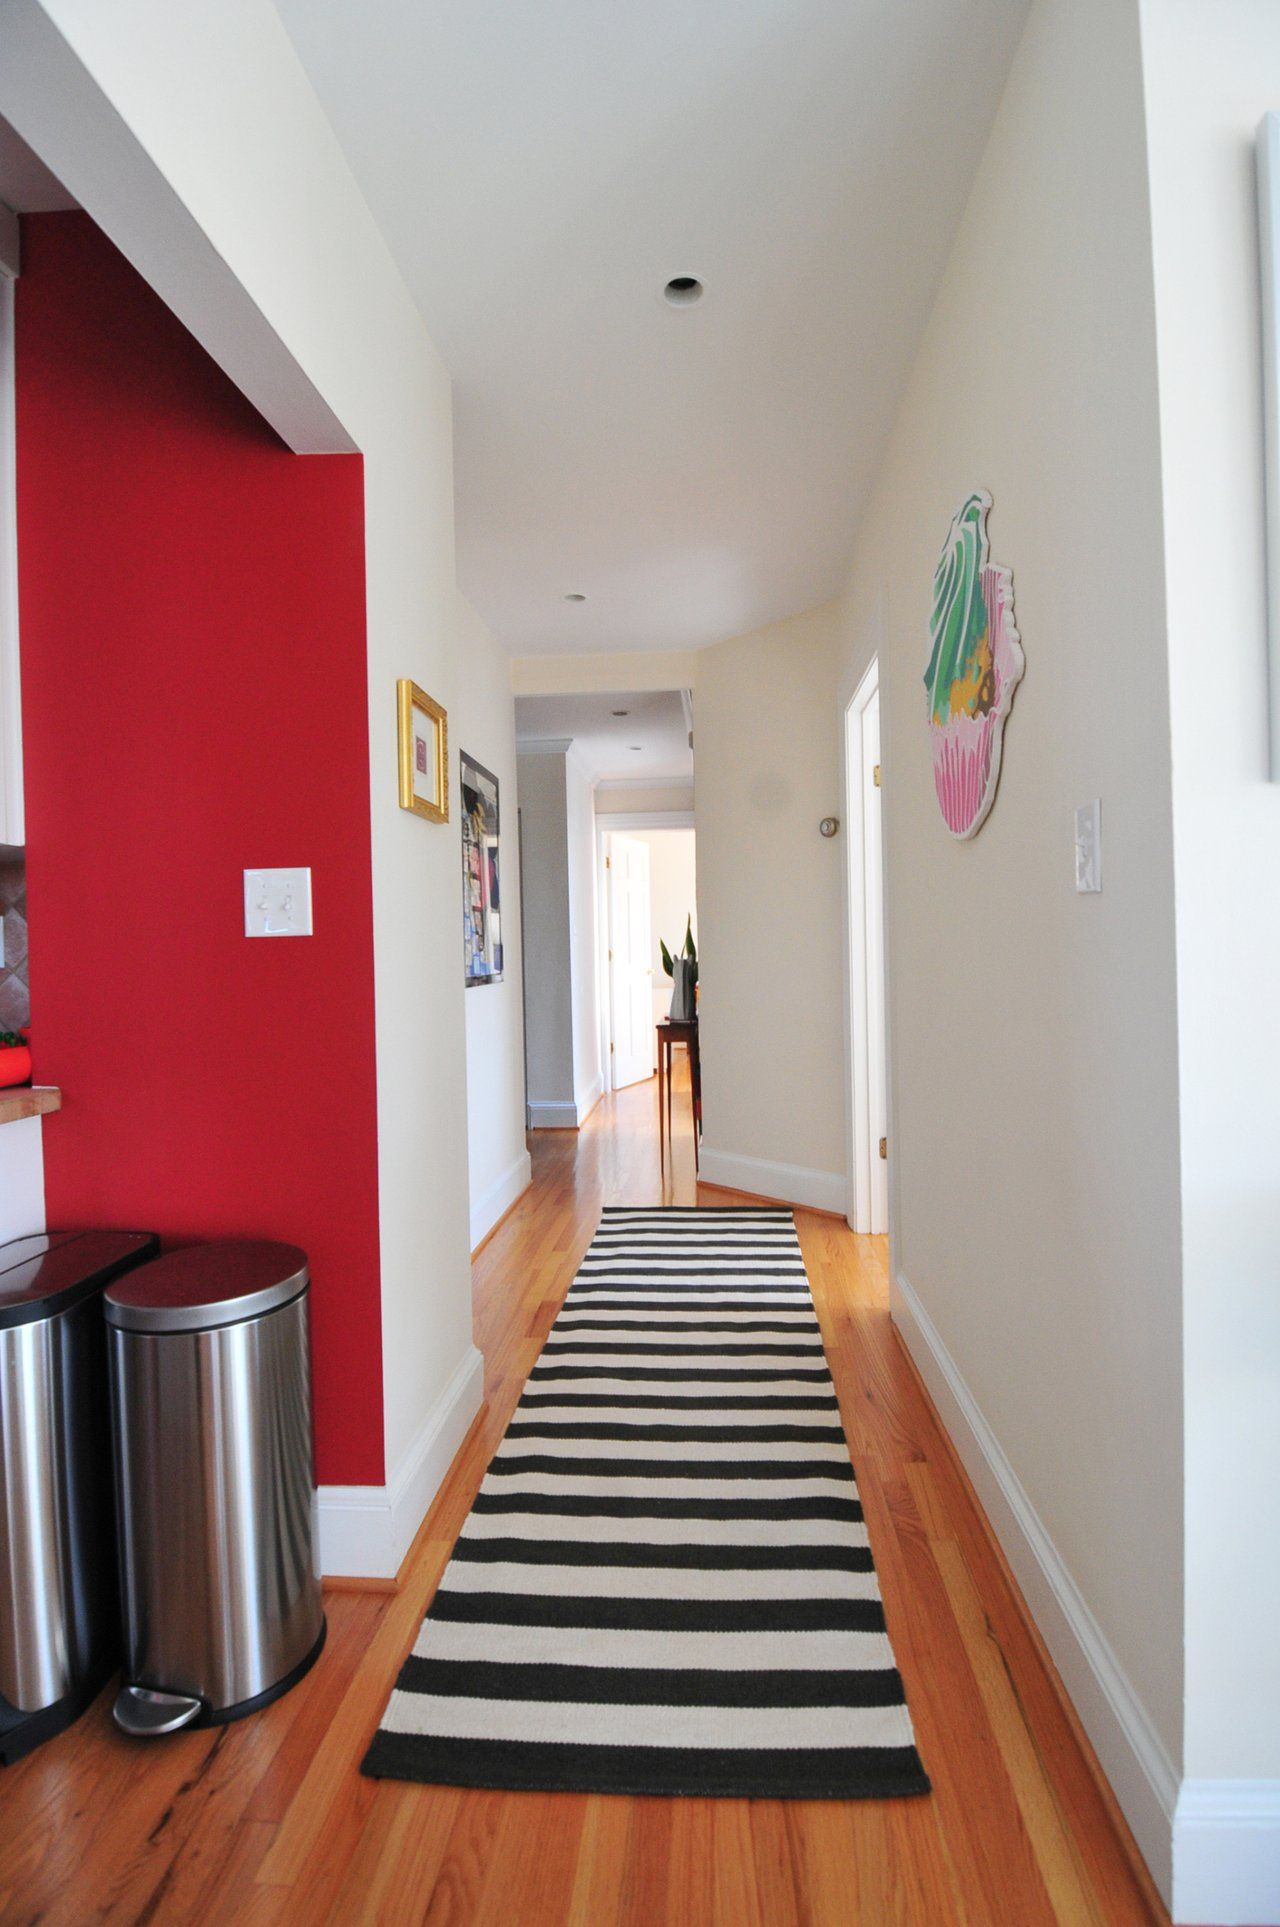 House Tour: Bright and Colorful Family D.C. Apartment | Nest, Bright ...